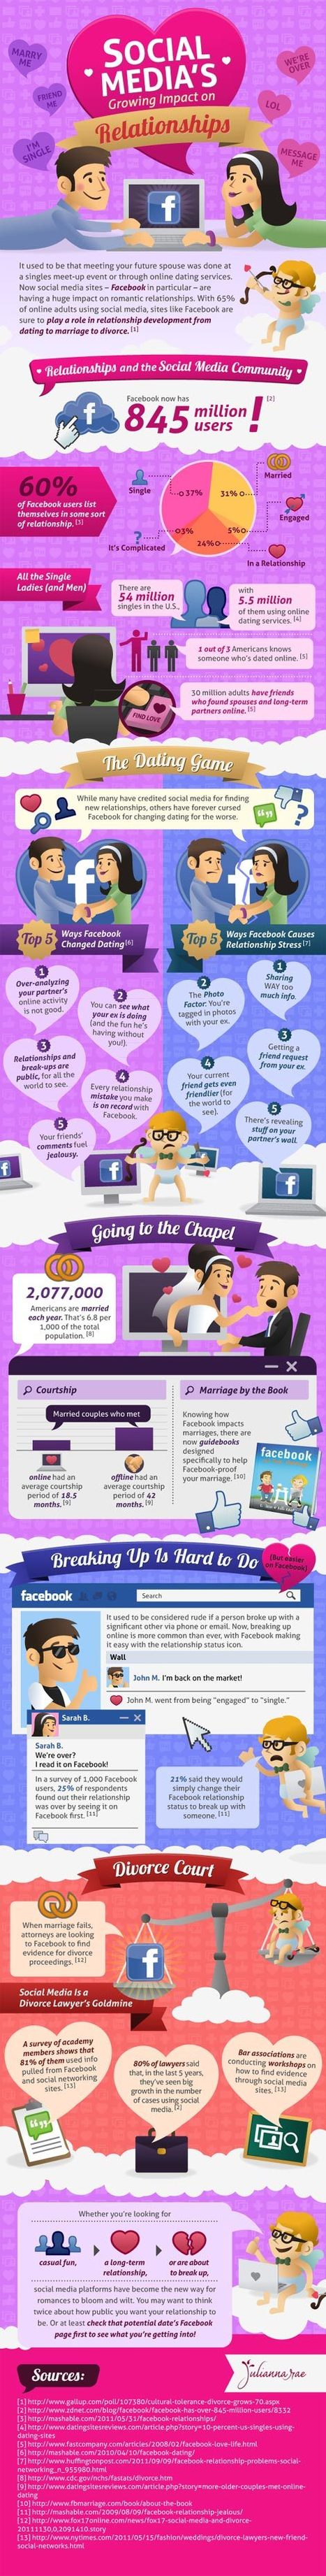 Social Media's Growing Impact on Relationships [INFOGRAPHICS]   Social Media (network, technology, blog, community, virtual reality, etc...)   Scoop.it